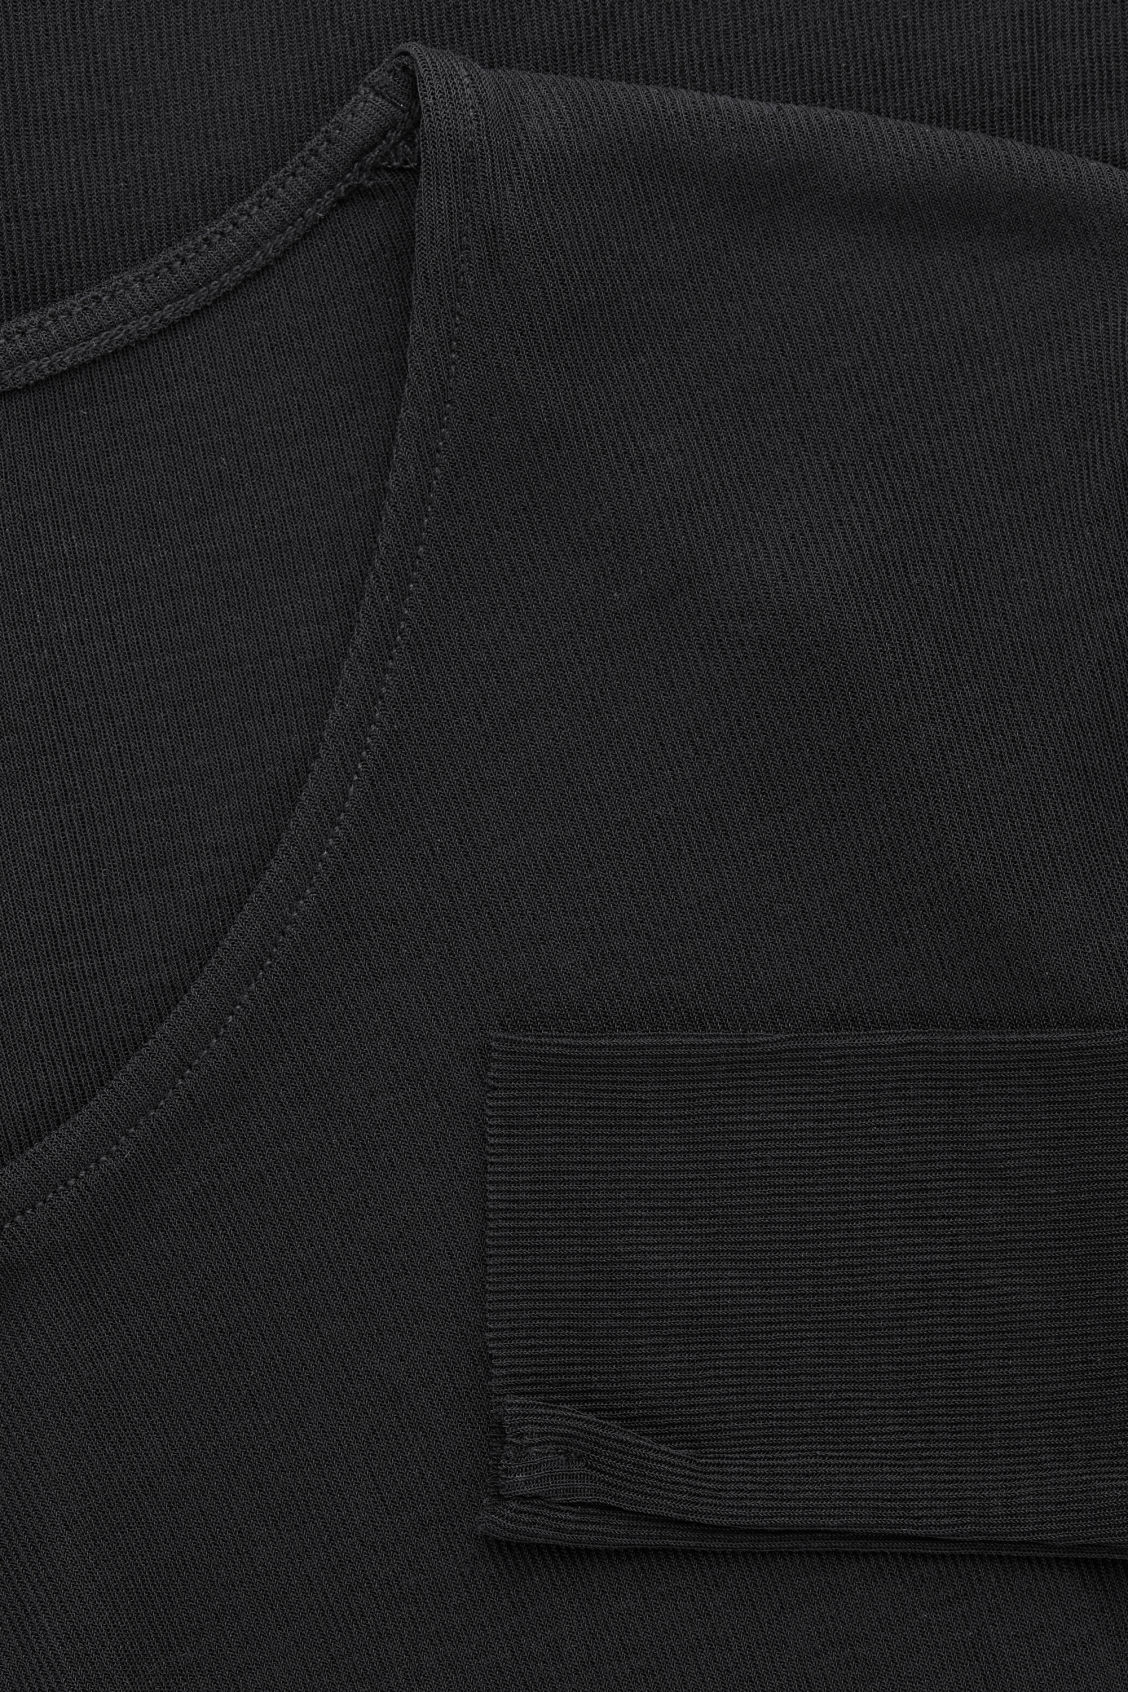 Side image of Cos silk jersey top in black